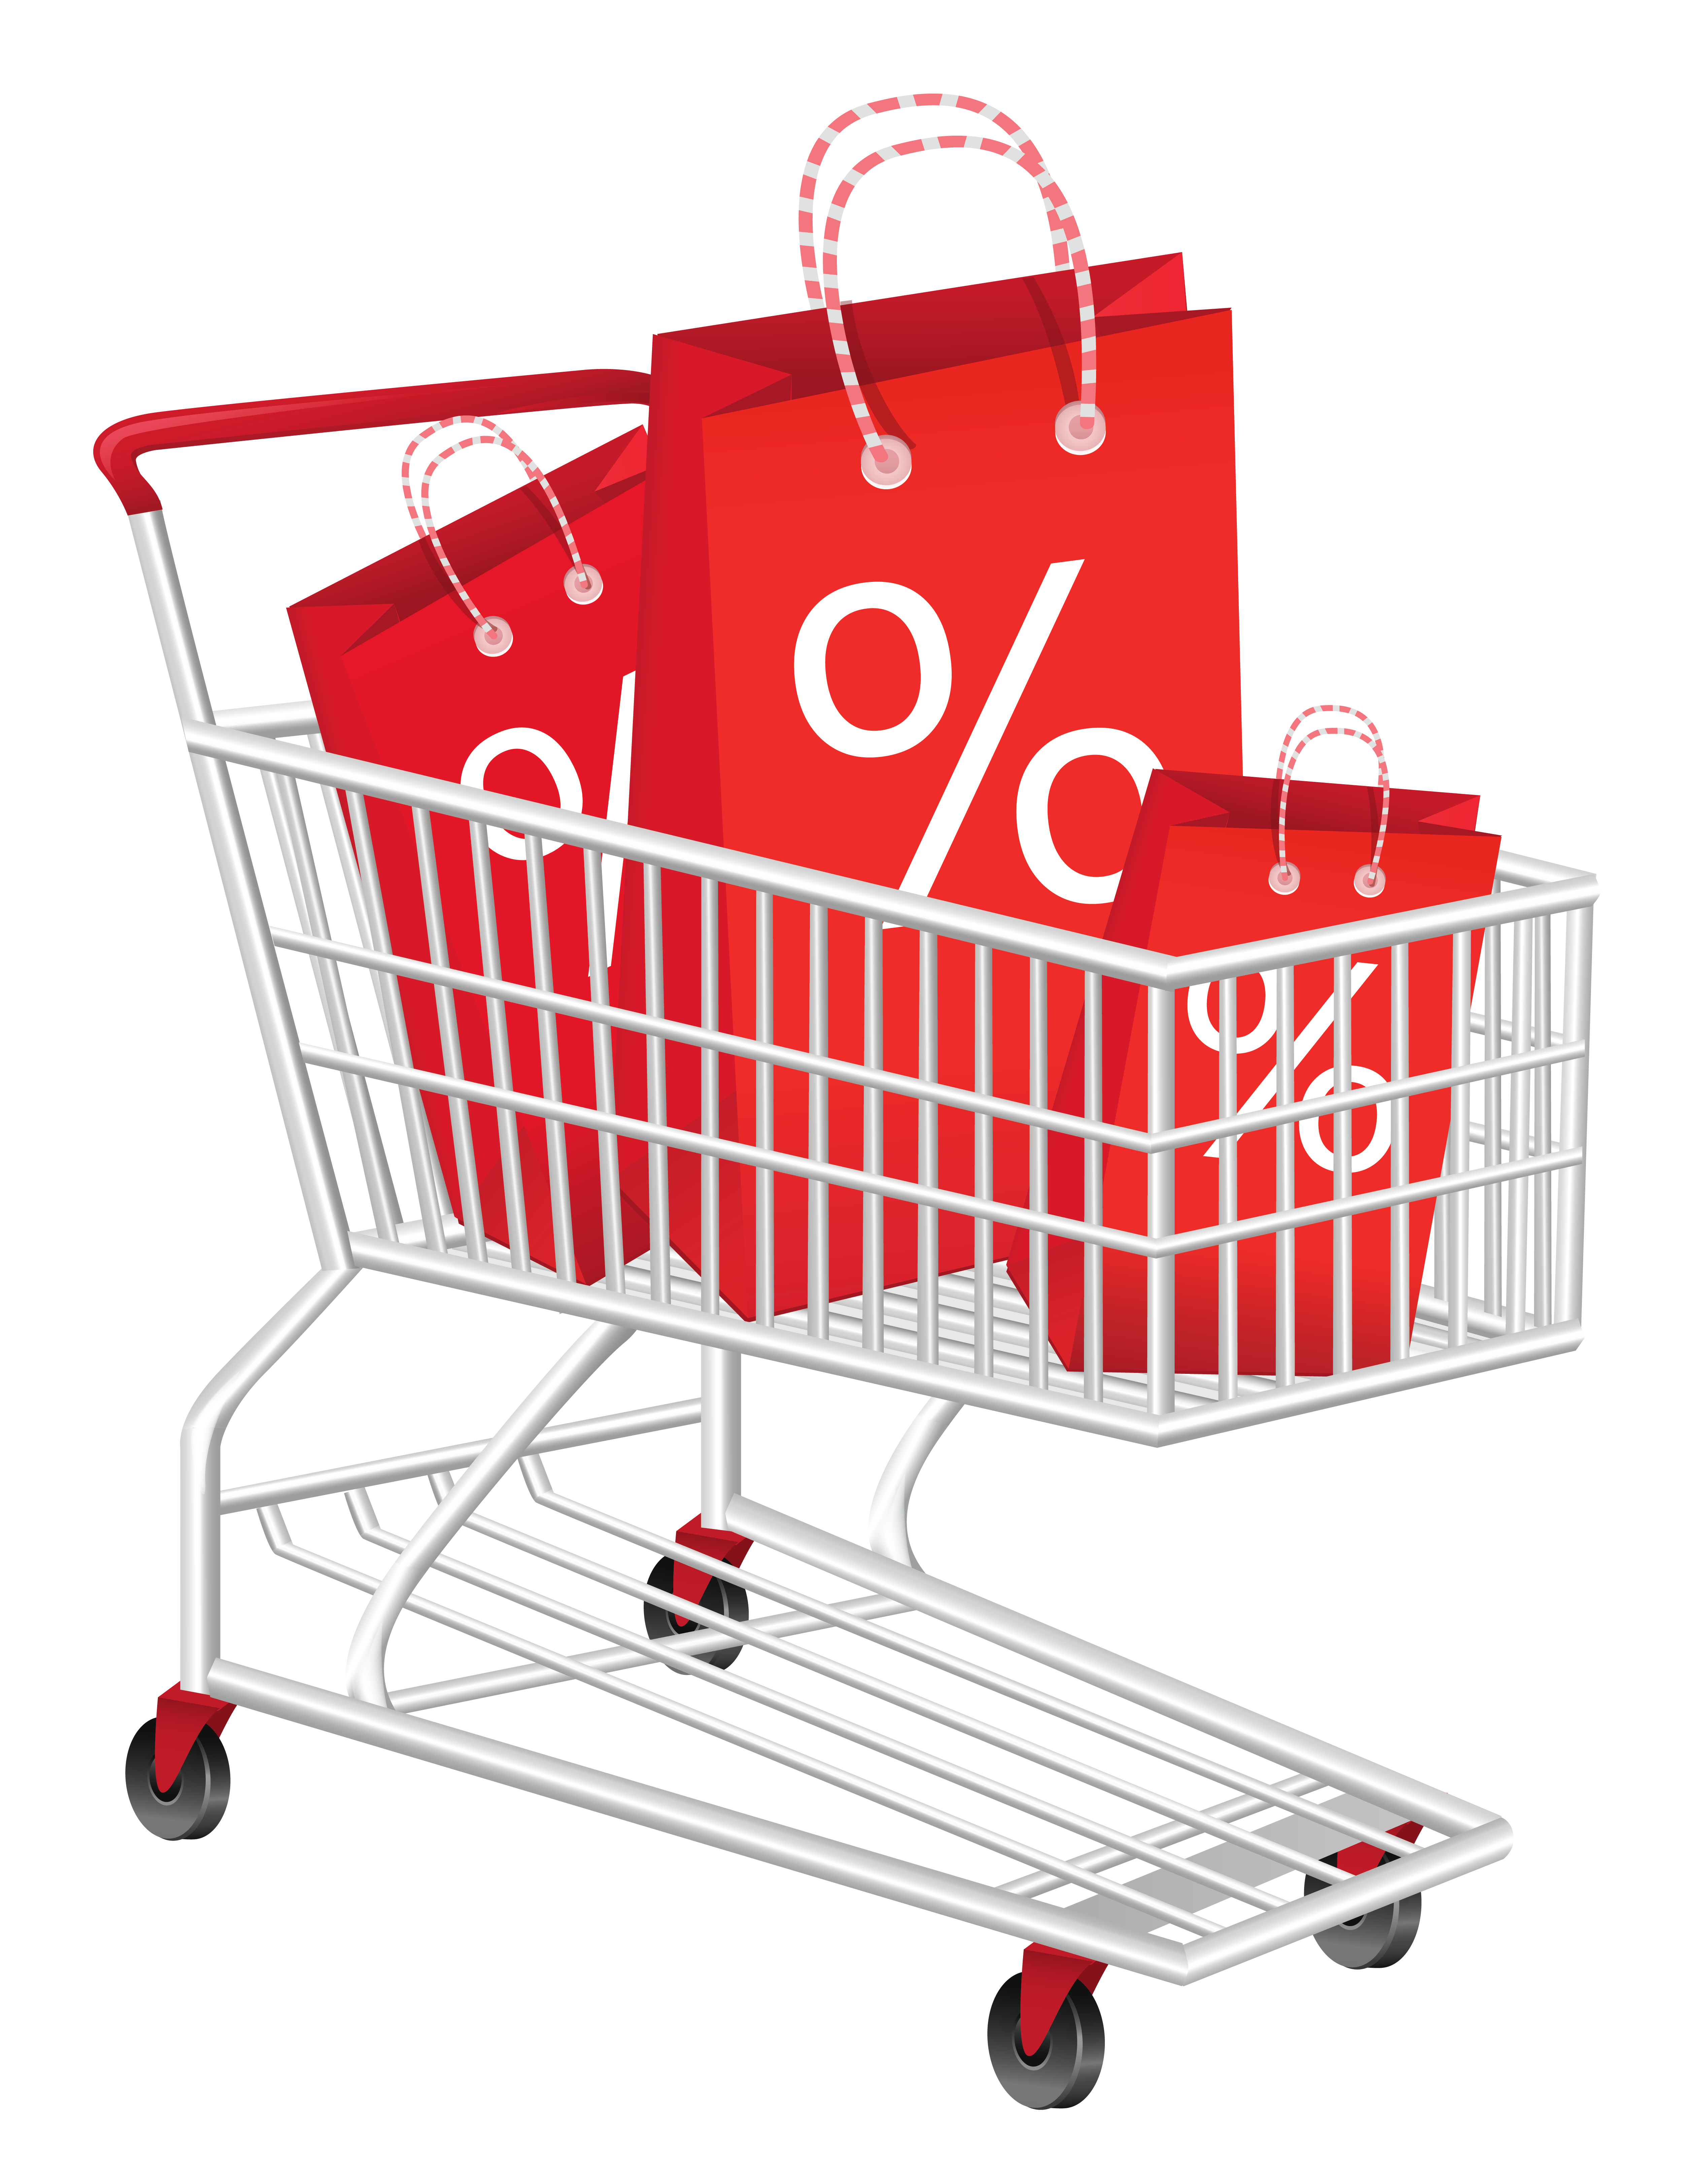 Book cart clipart vector freeuse library Discount Shopping Cart Clipart PNG Picture | 시도해 볼 프로젝트 ... vector freeuse library